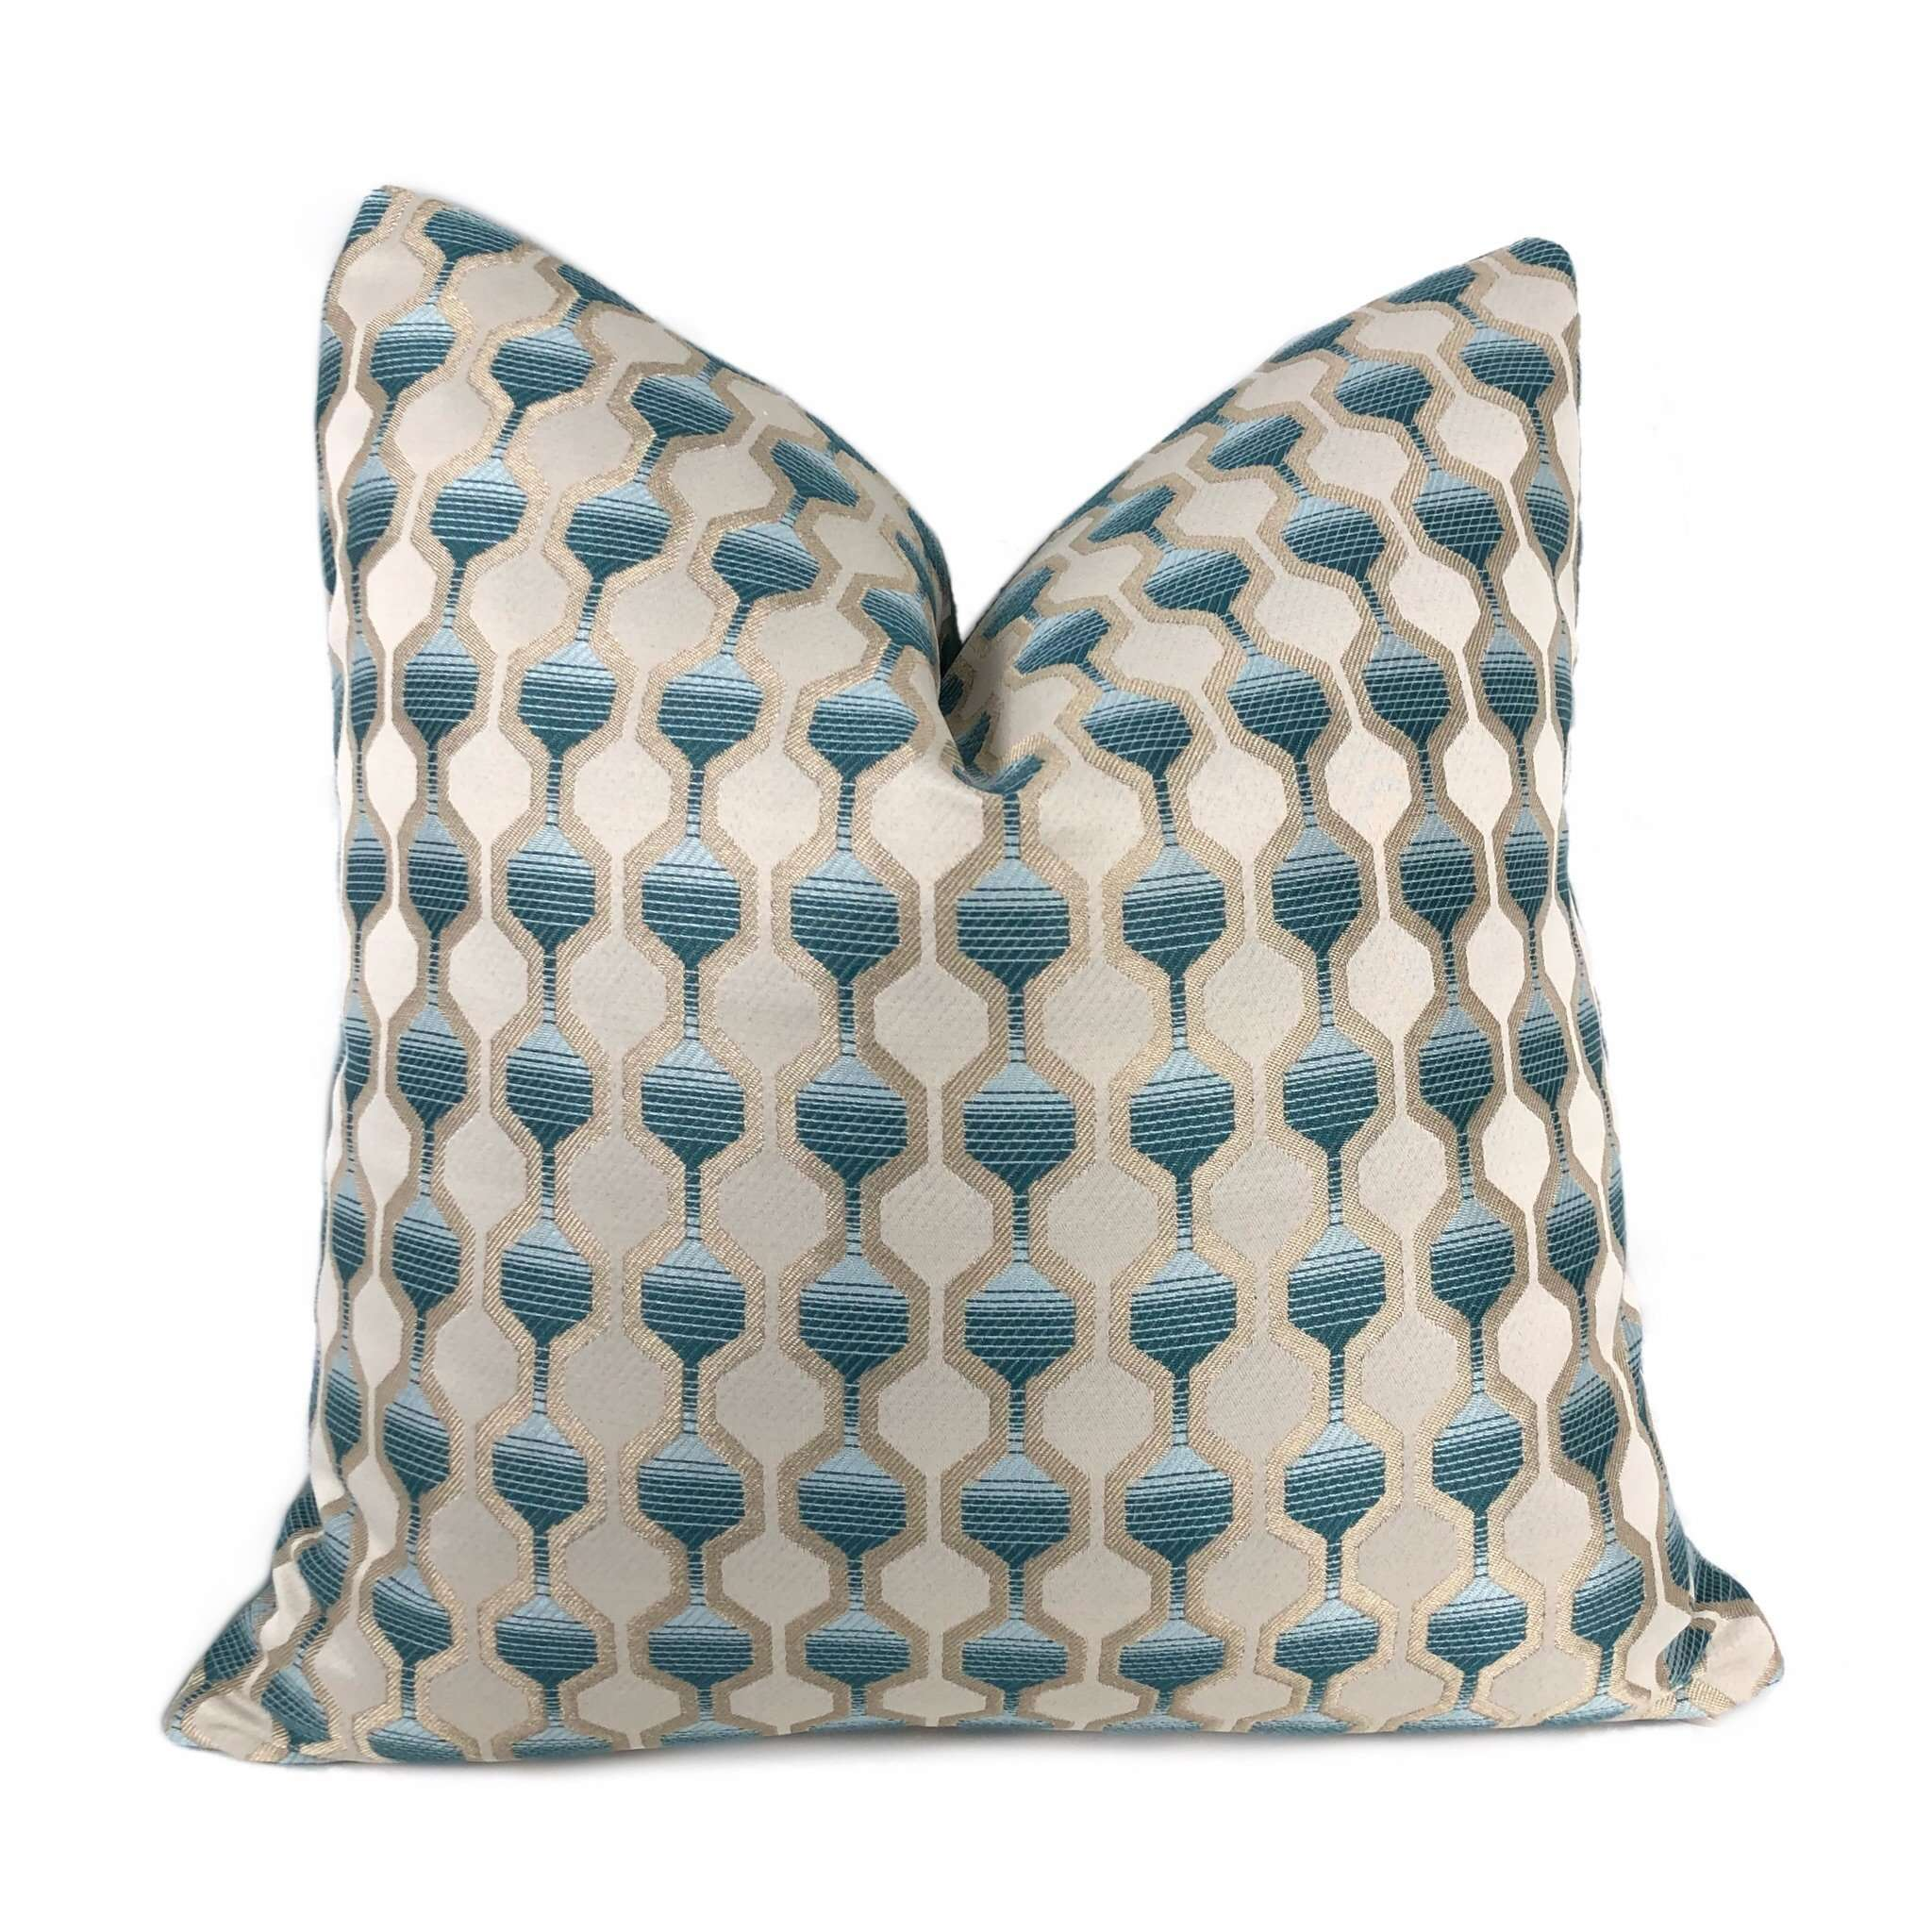 Modern Geometric Hexagon Aqua Blue Green Silver Pillow Cushion Cover Cushion Pillow Case Euro Sham 16x16 18x18 20x20 22x22 24x24 26x26 28x28 Lumbar Pillow 12x18 12x20 12x24 14x20 16x26 by Aloriam